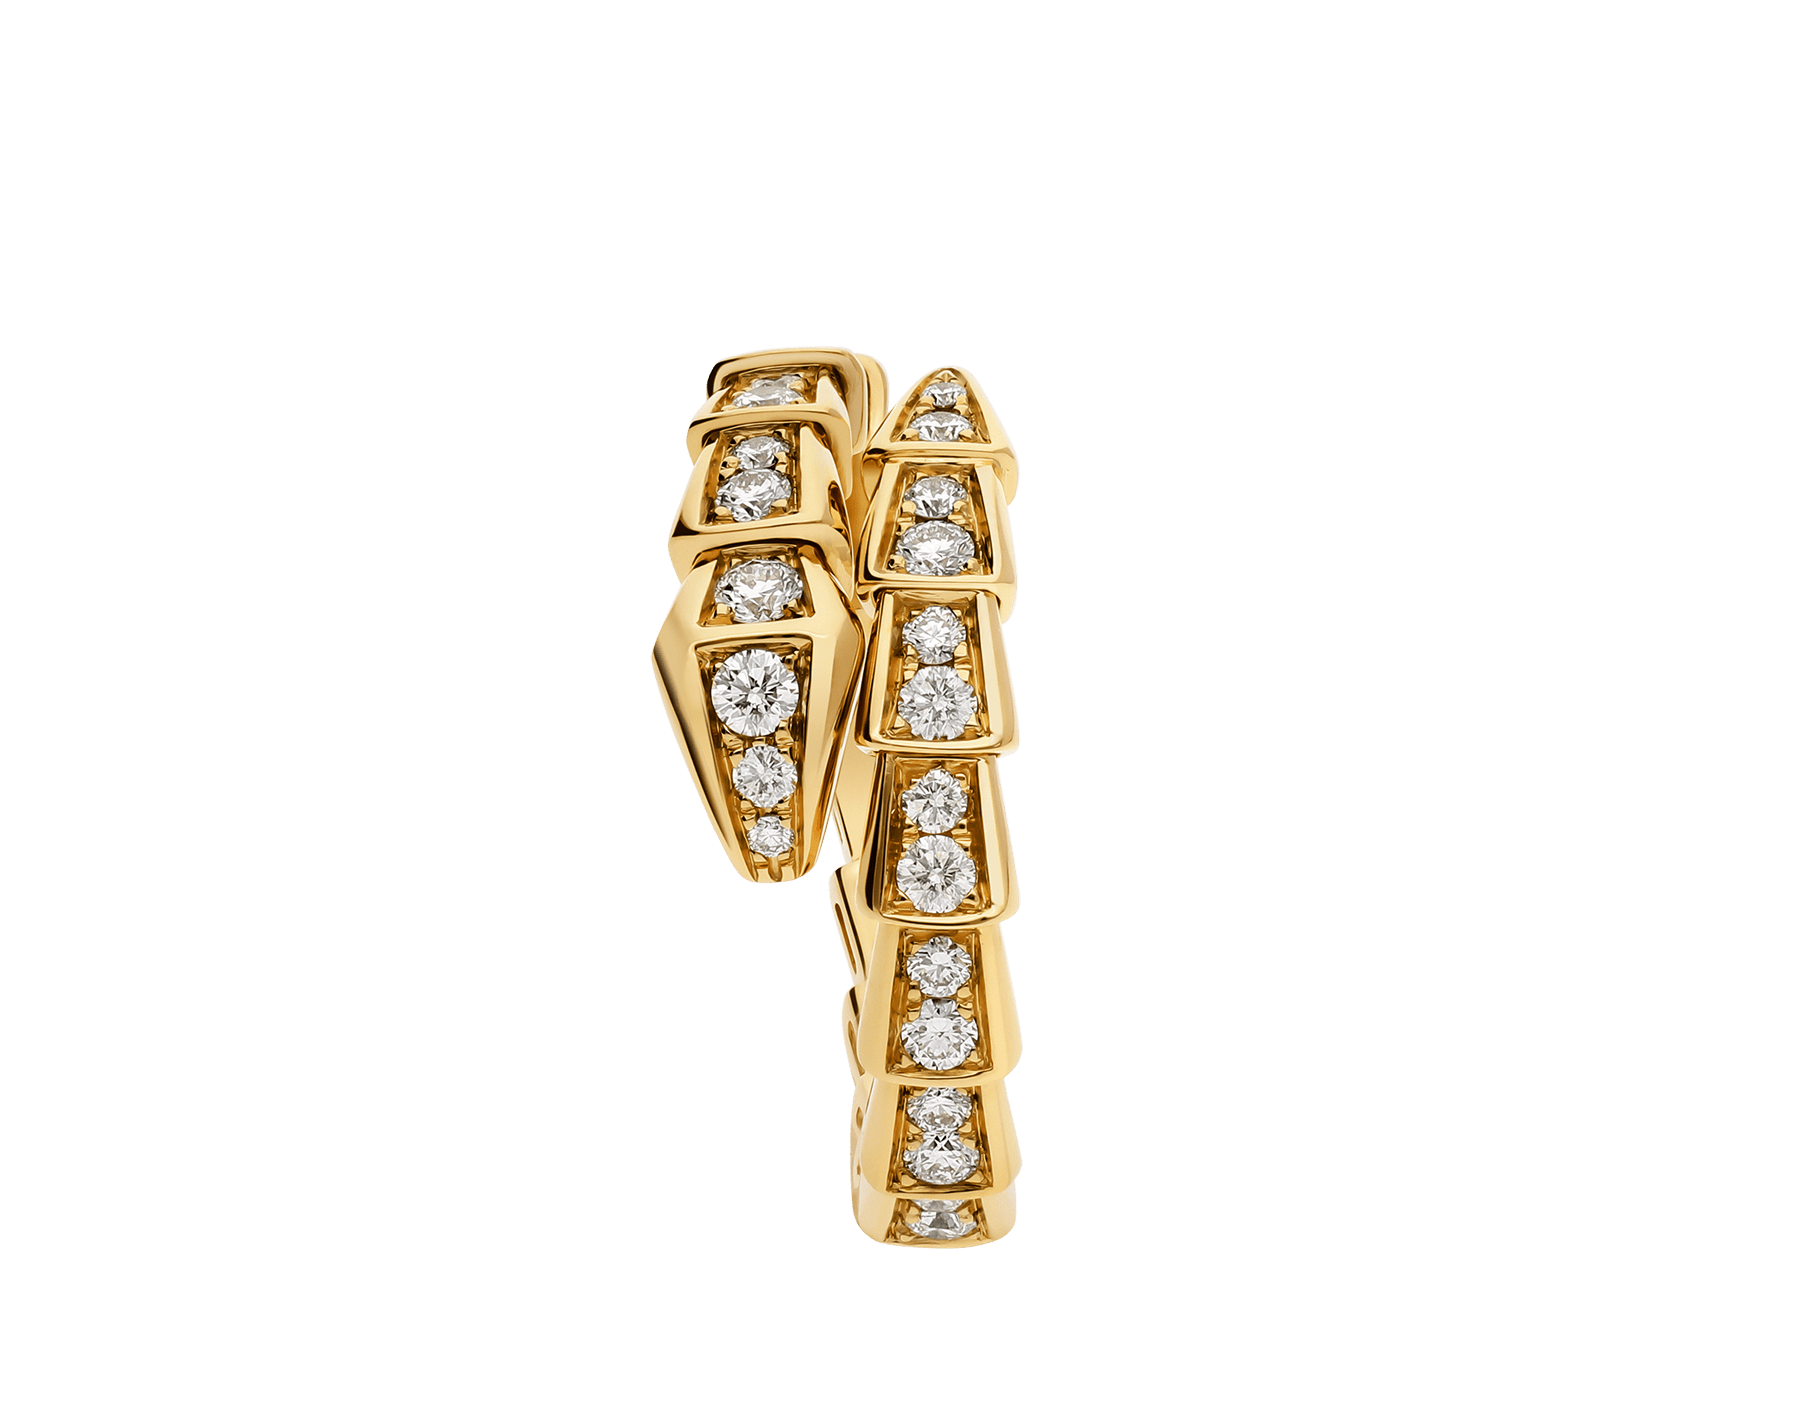 Serpenti Viper 18 kt yellow gold ring with pavé diamonds AN858981 image 2